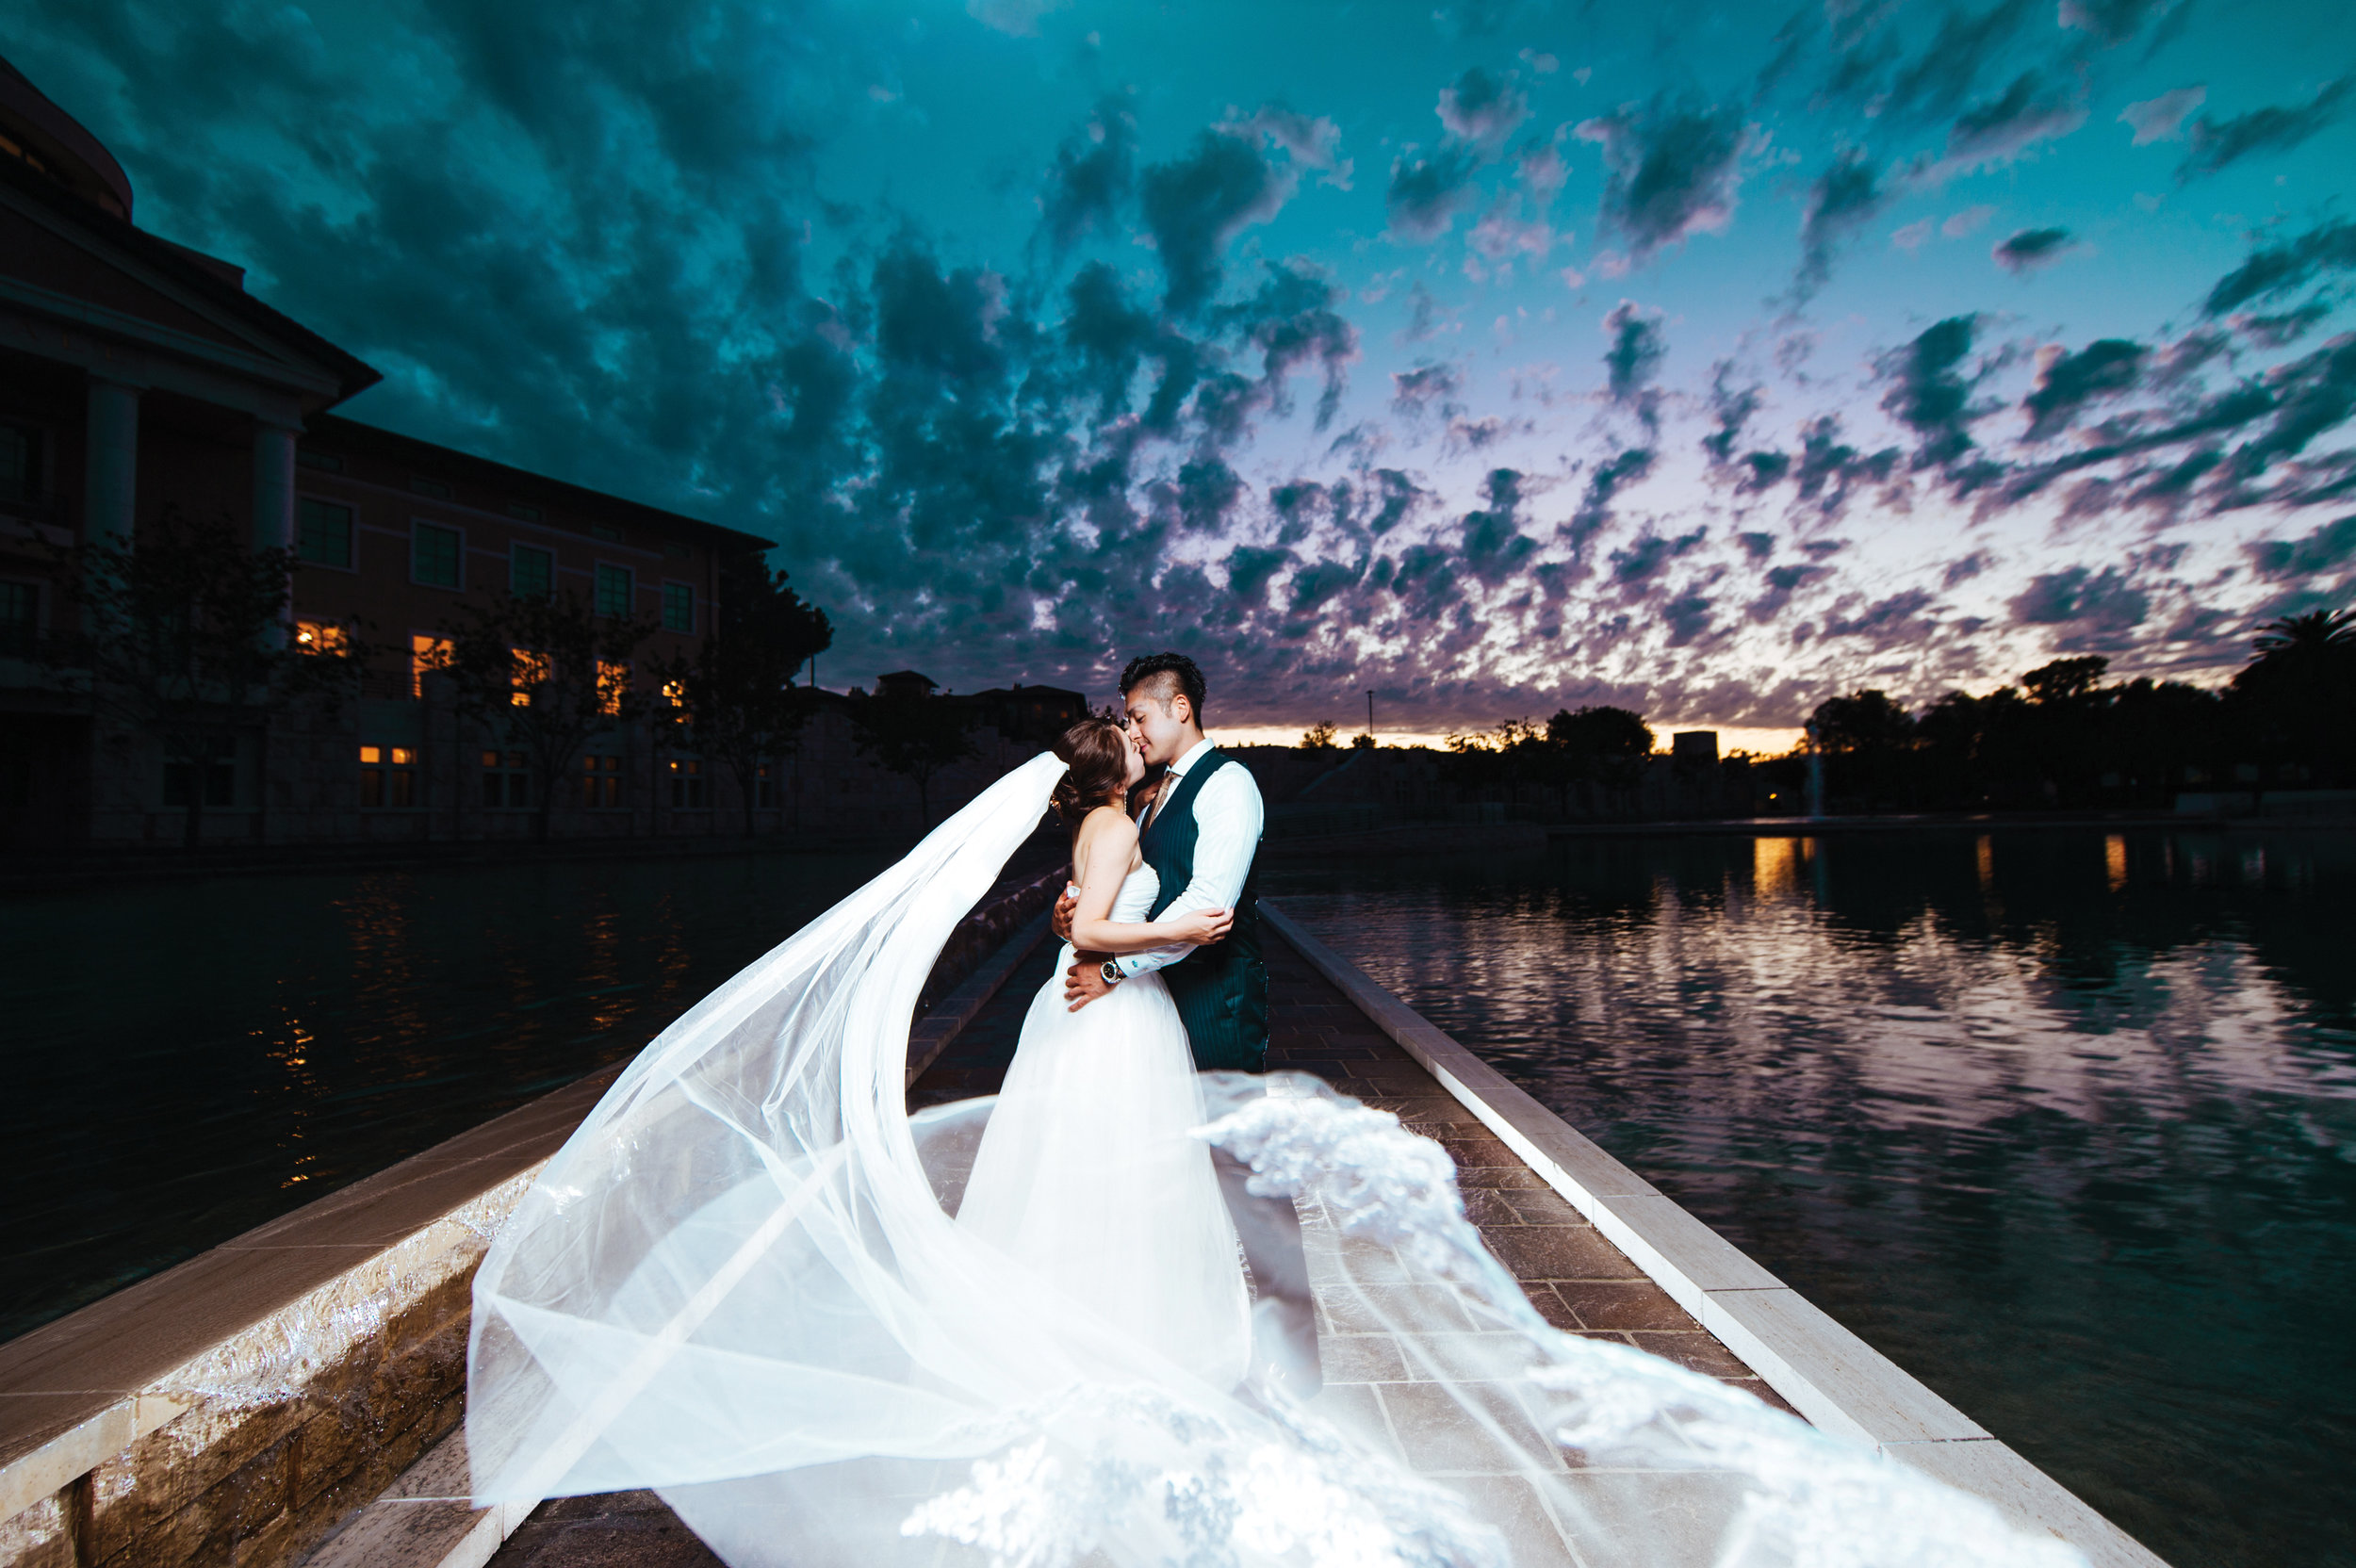 Soka University of America Wedding Photography.jpg